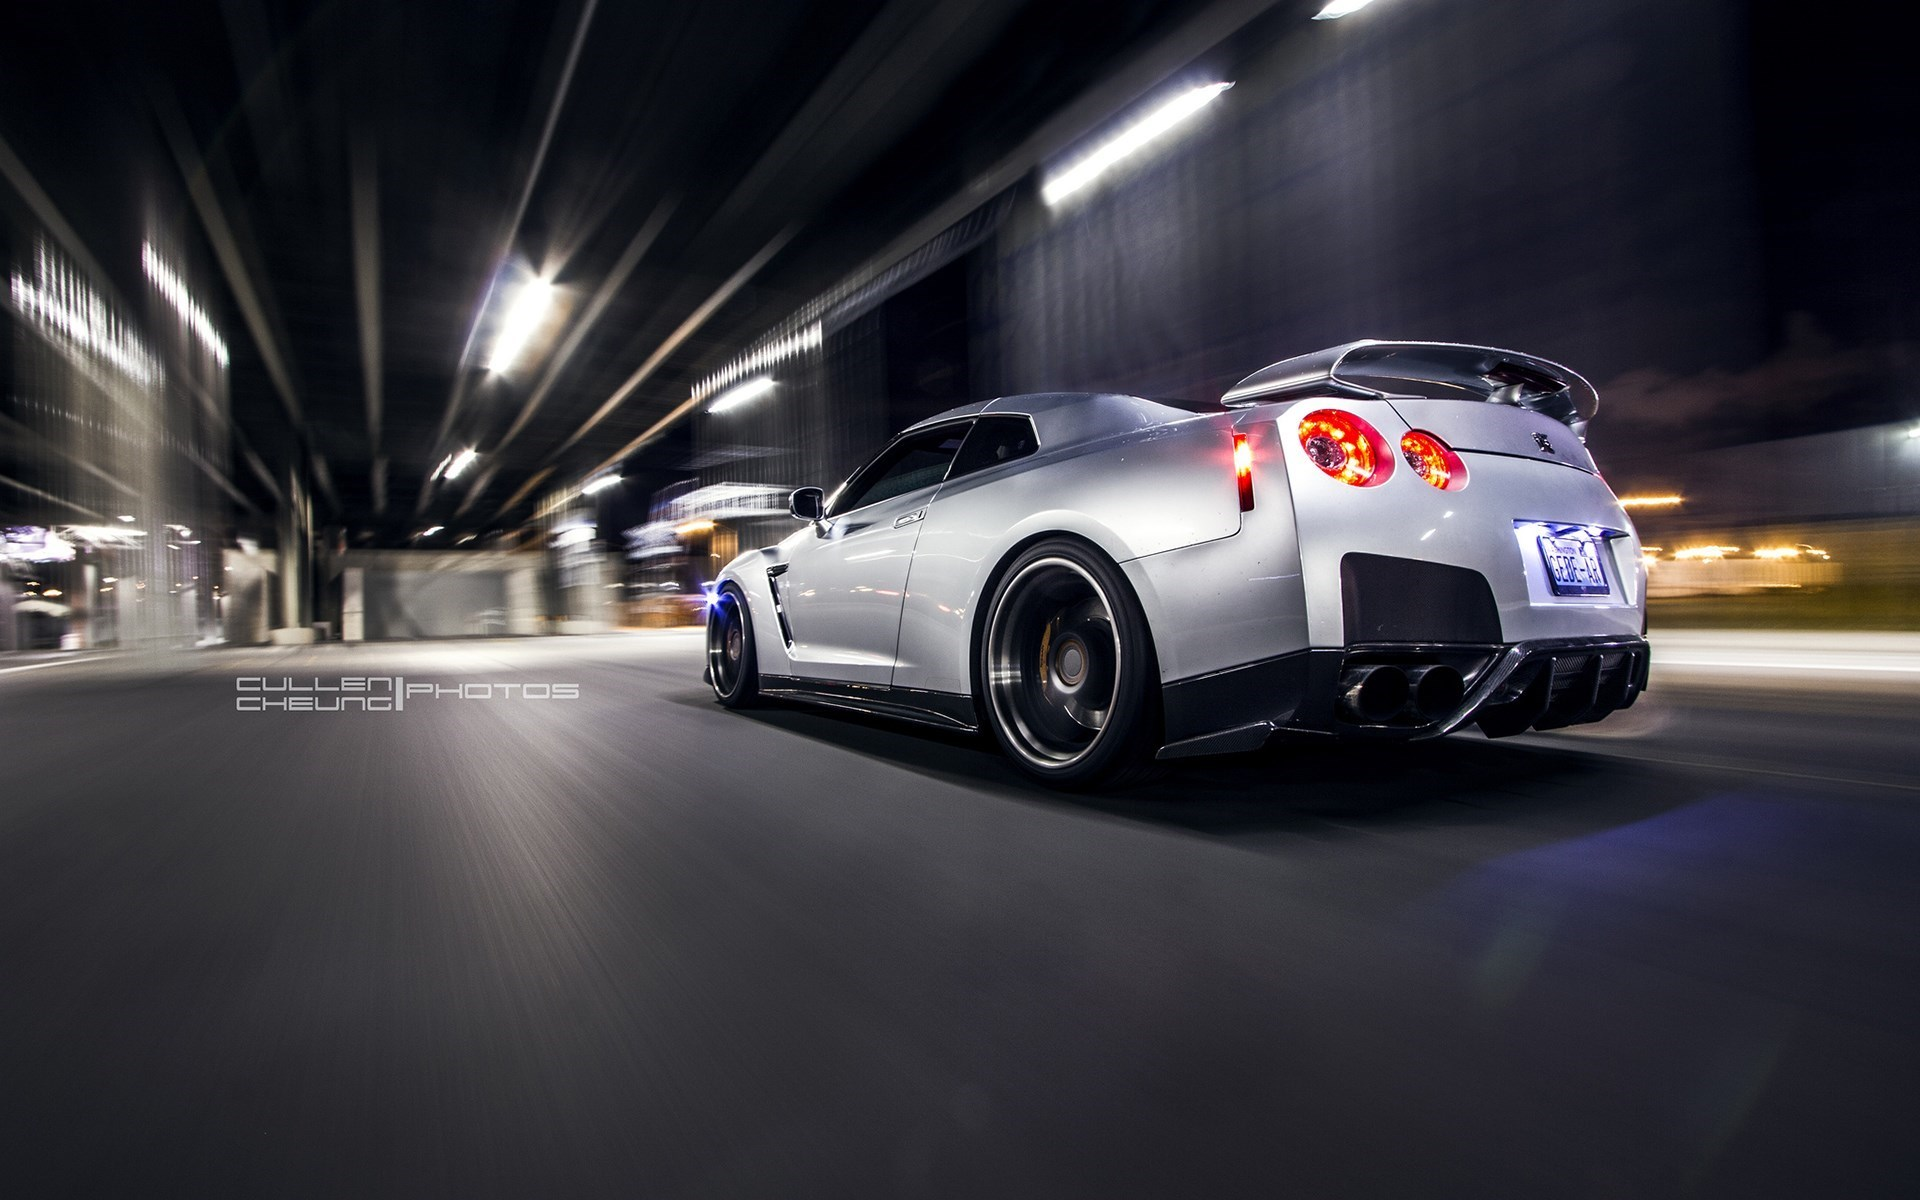 Nissan GT-R R35 Rear Car Wheels Tuning HD Wallpaper